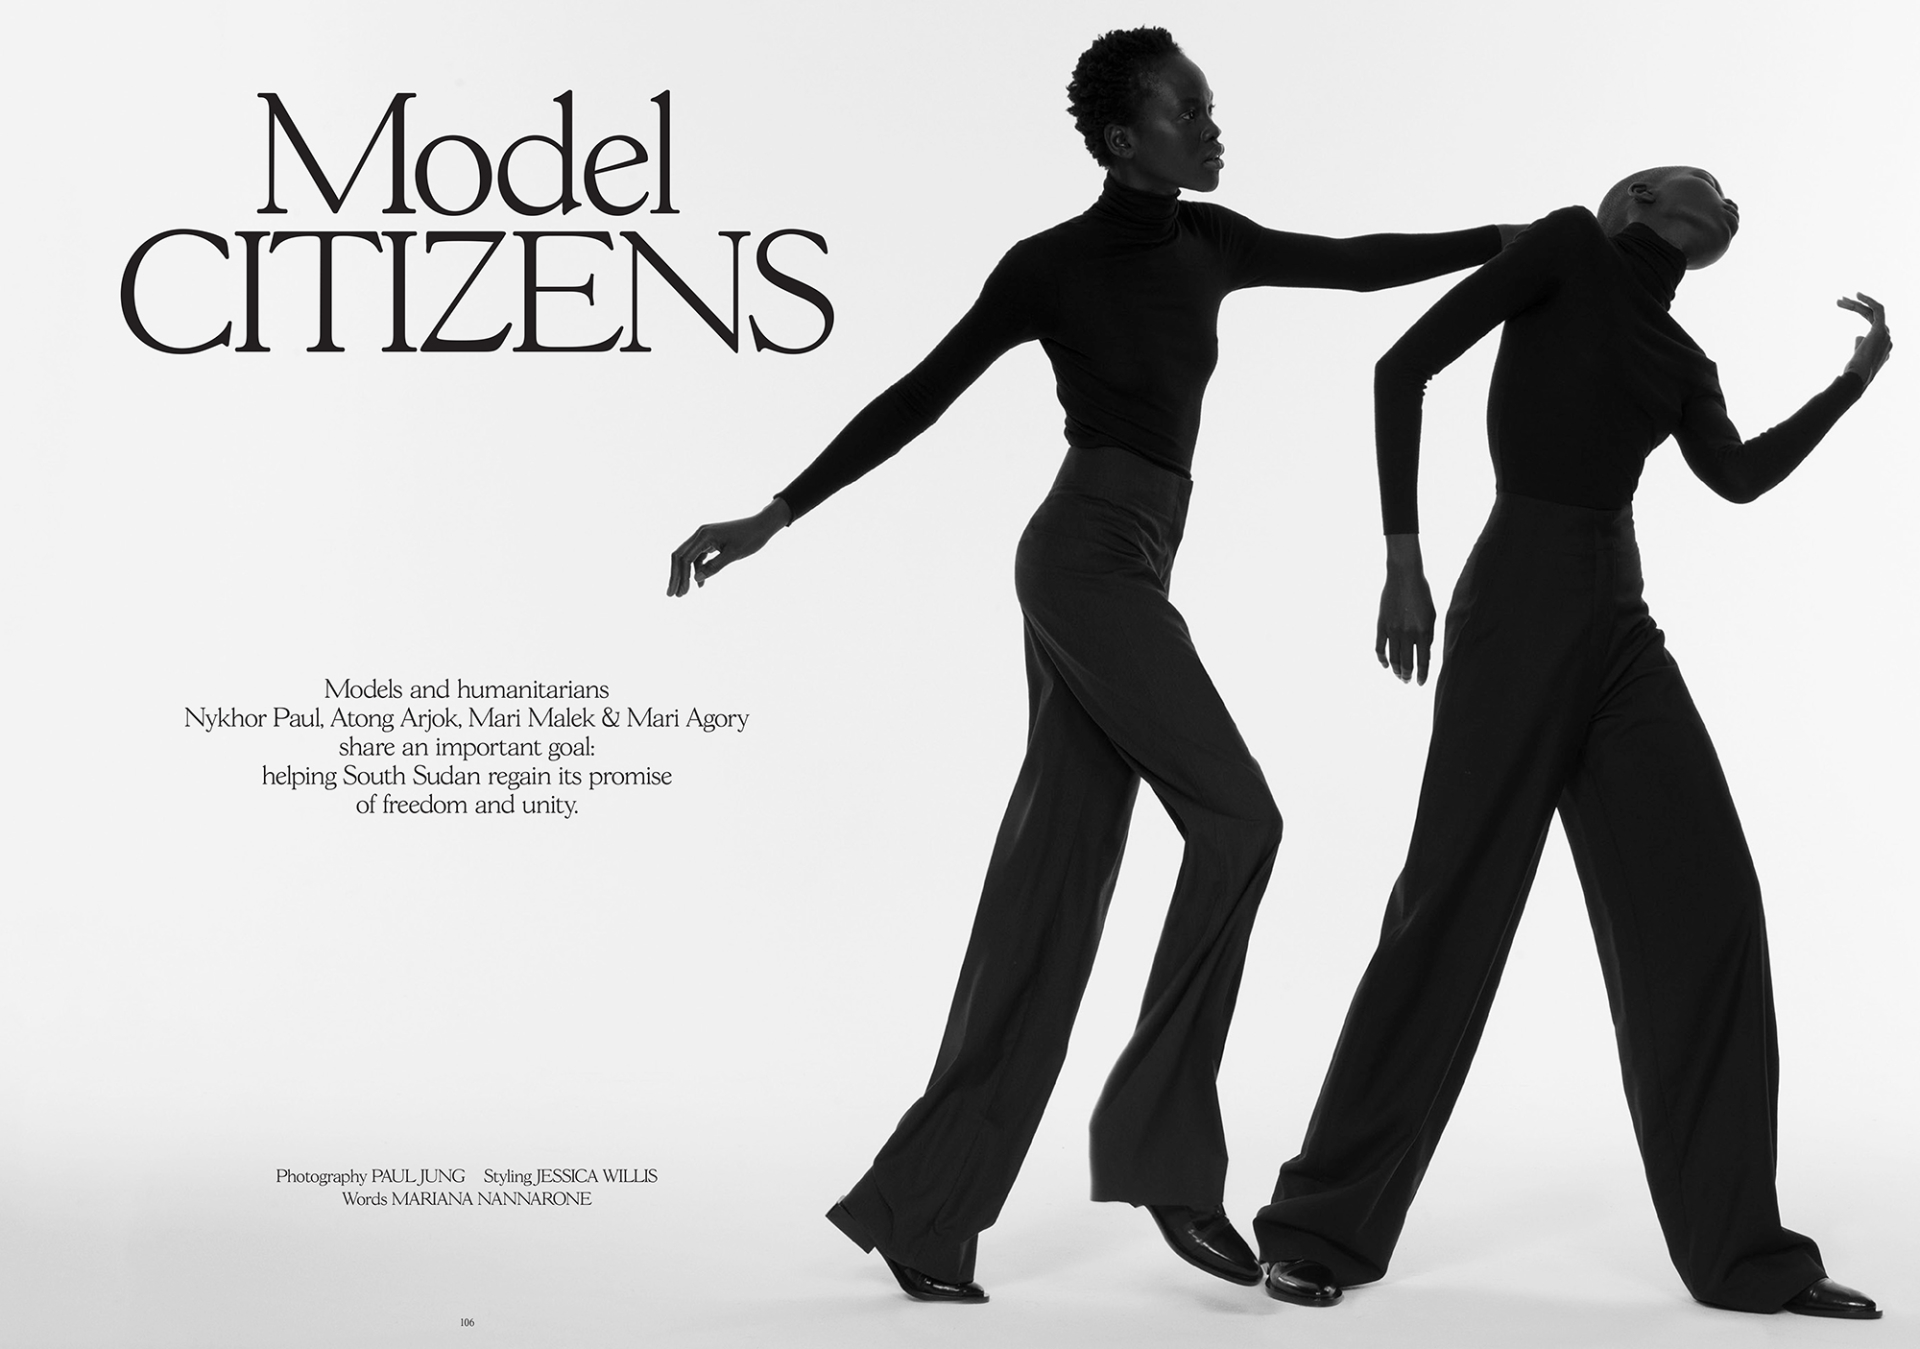 Jessica Willis Model Citizens